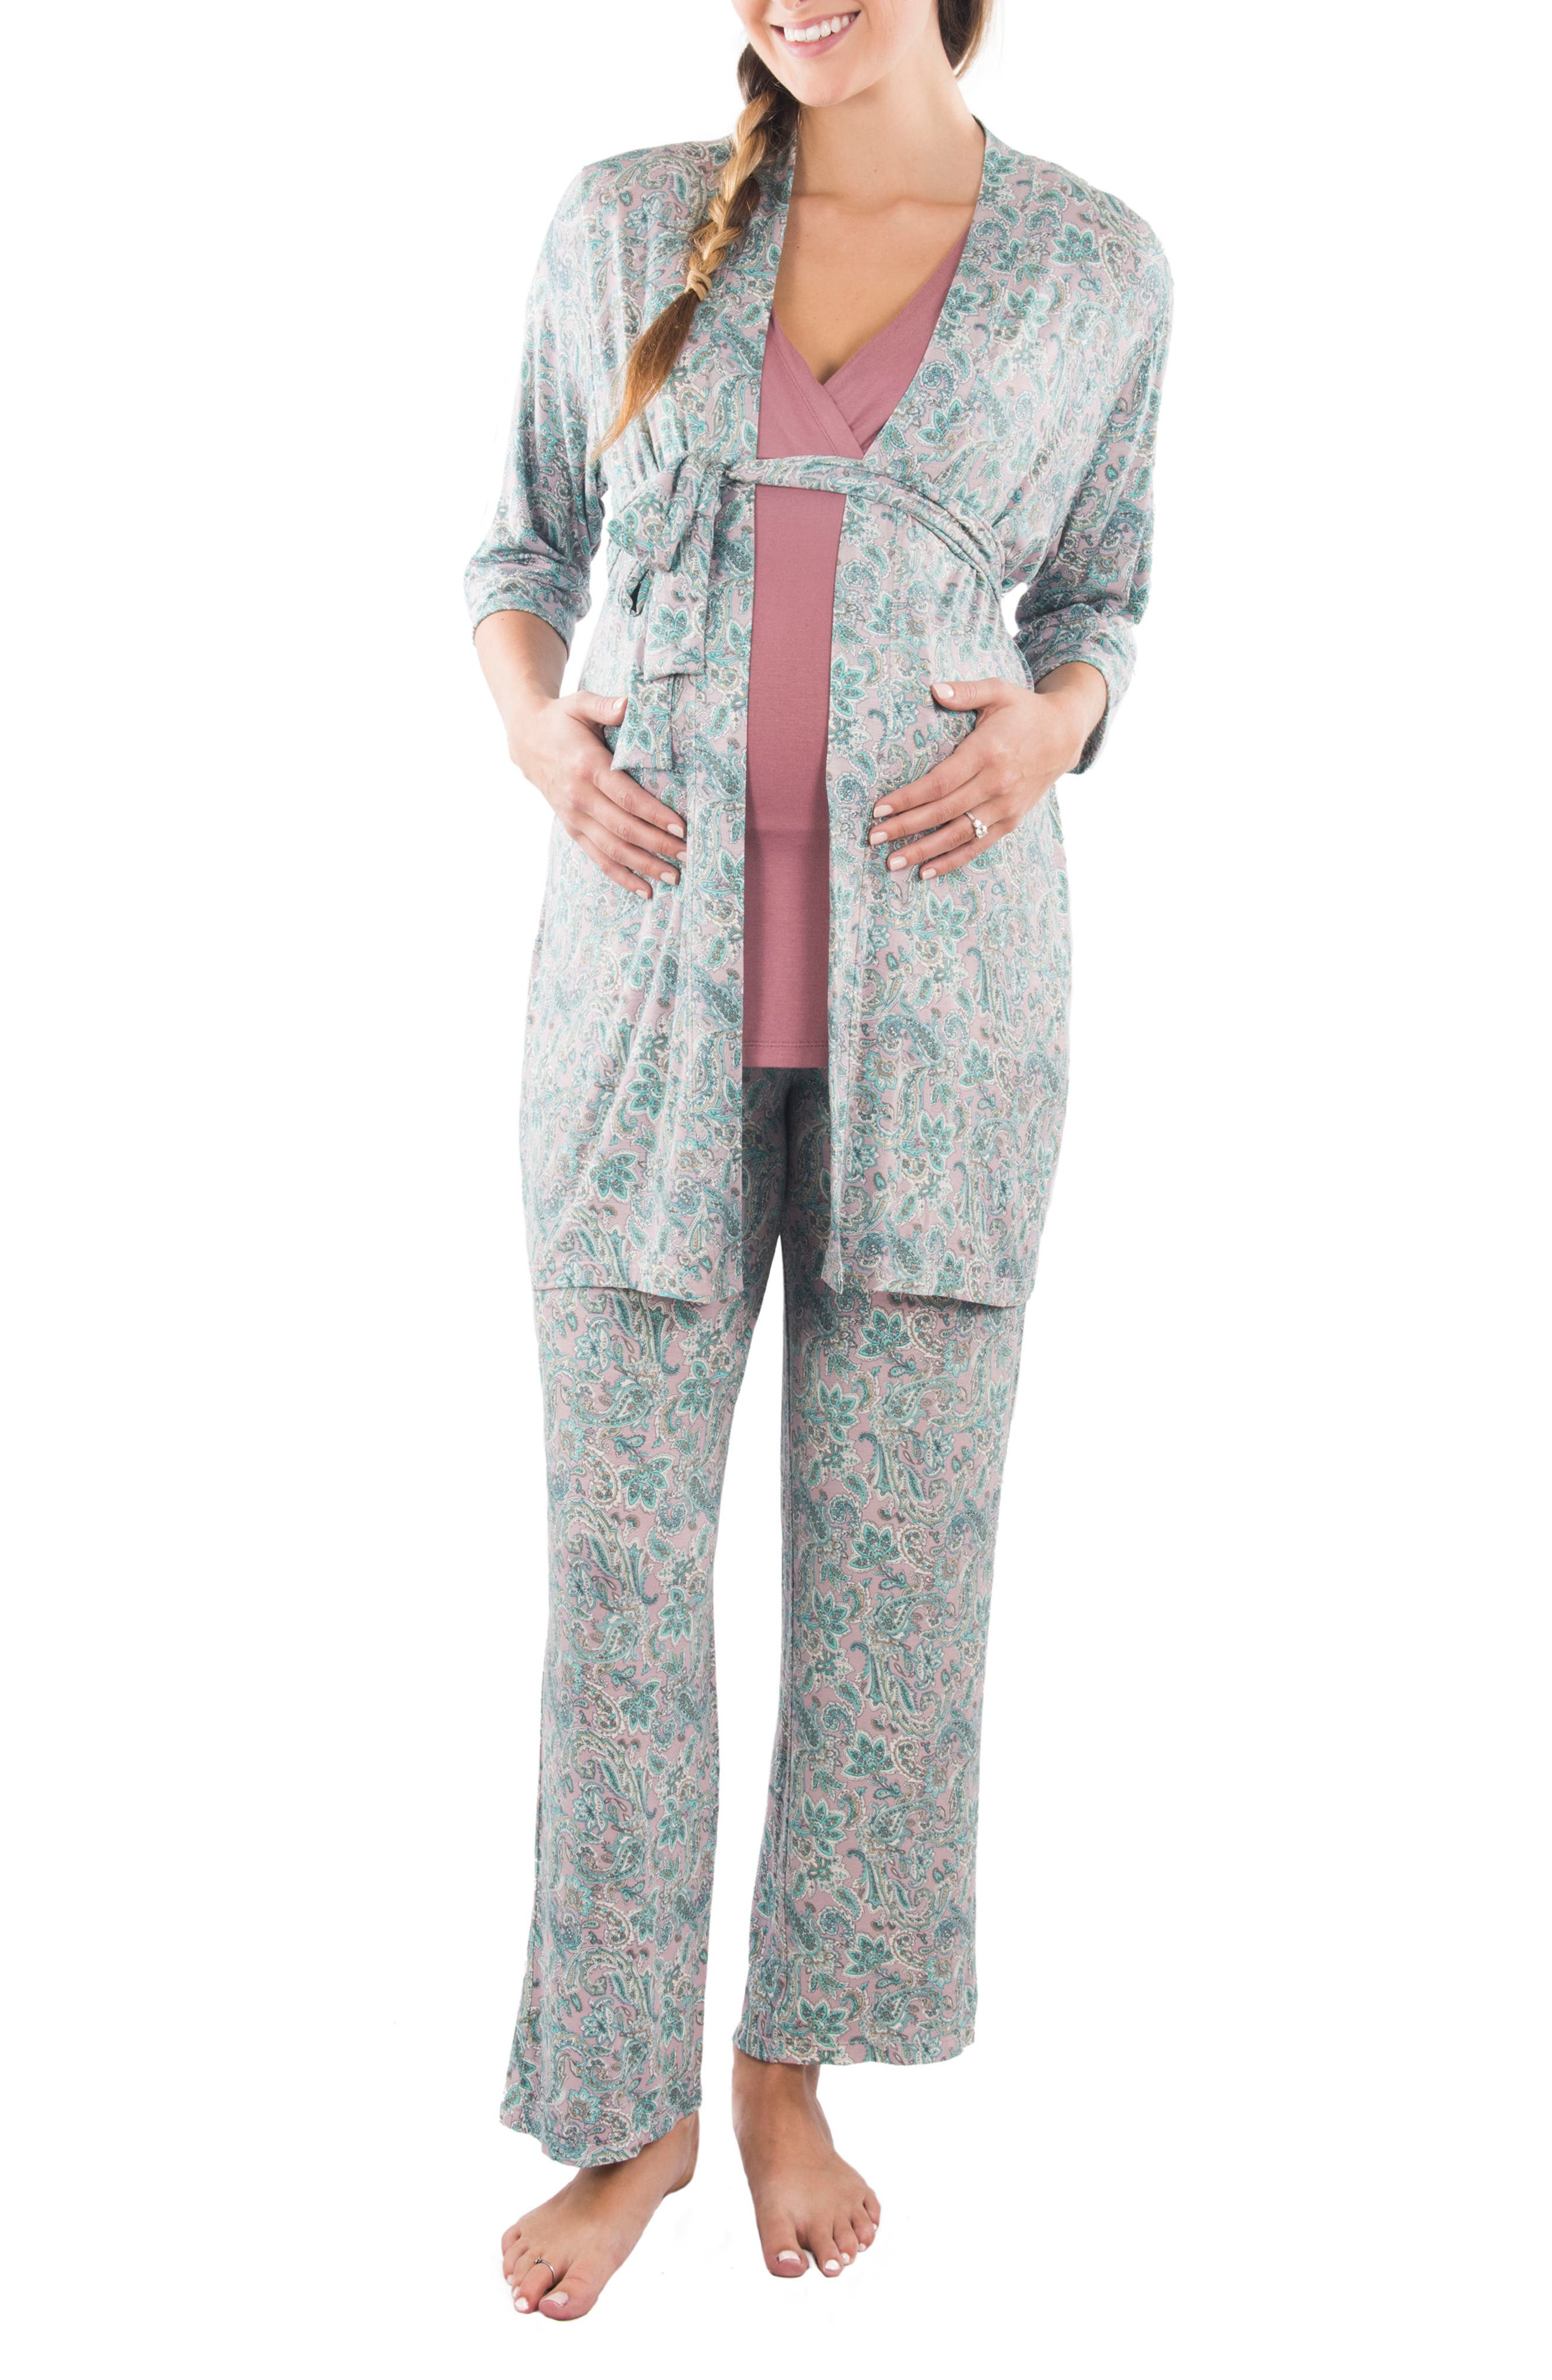 Everly Grey Susan 5-Piece Maternity/Nursing Pajama Set